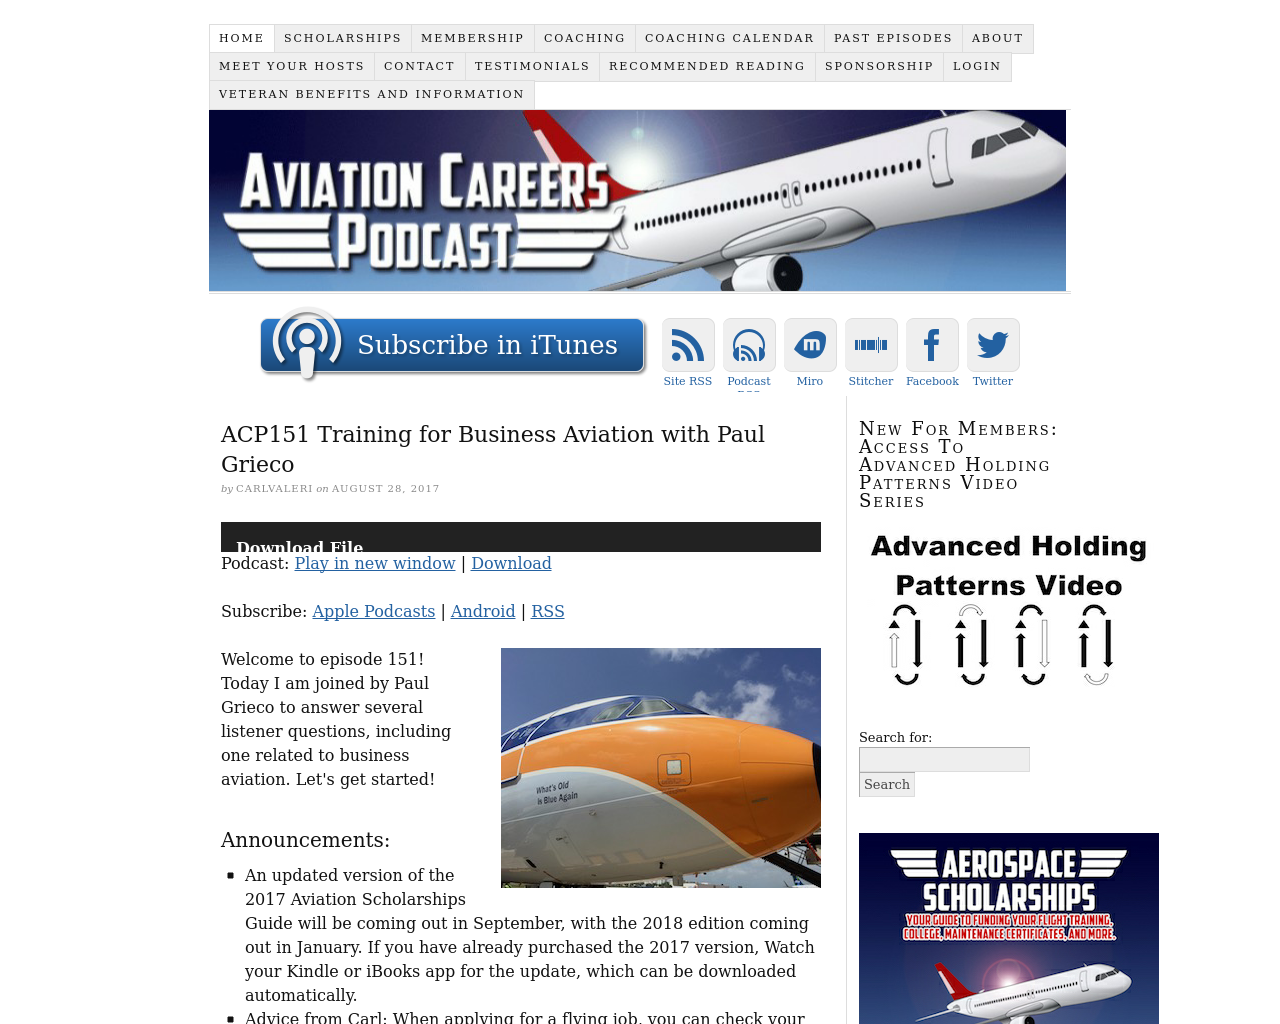 Aviation-Careers-Podcast-Advertising-Reviews-Pricing